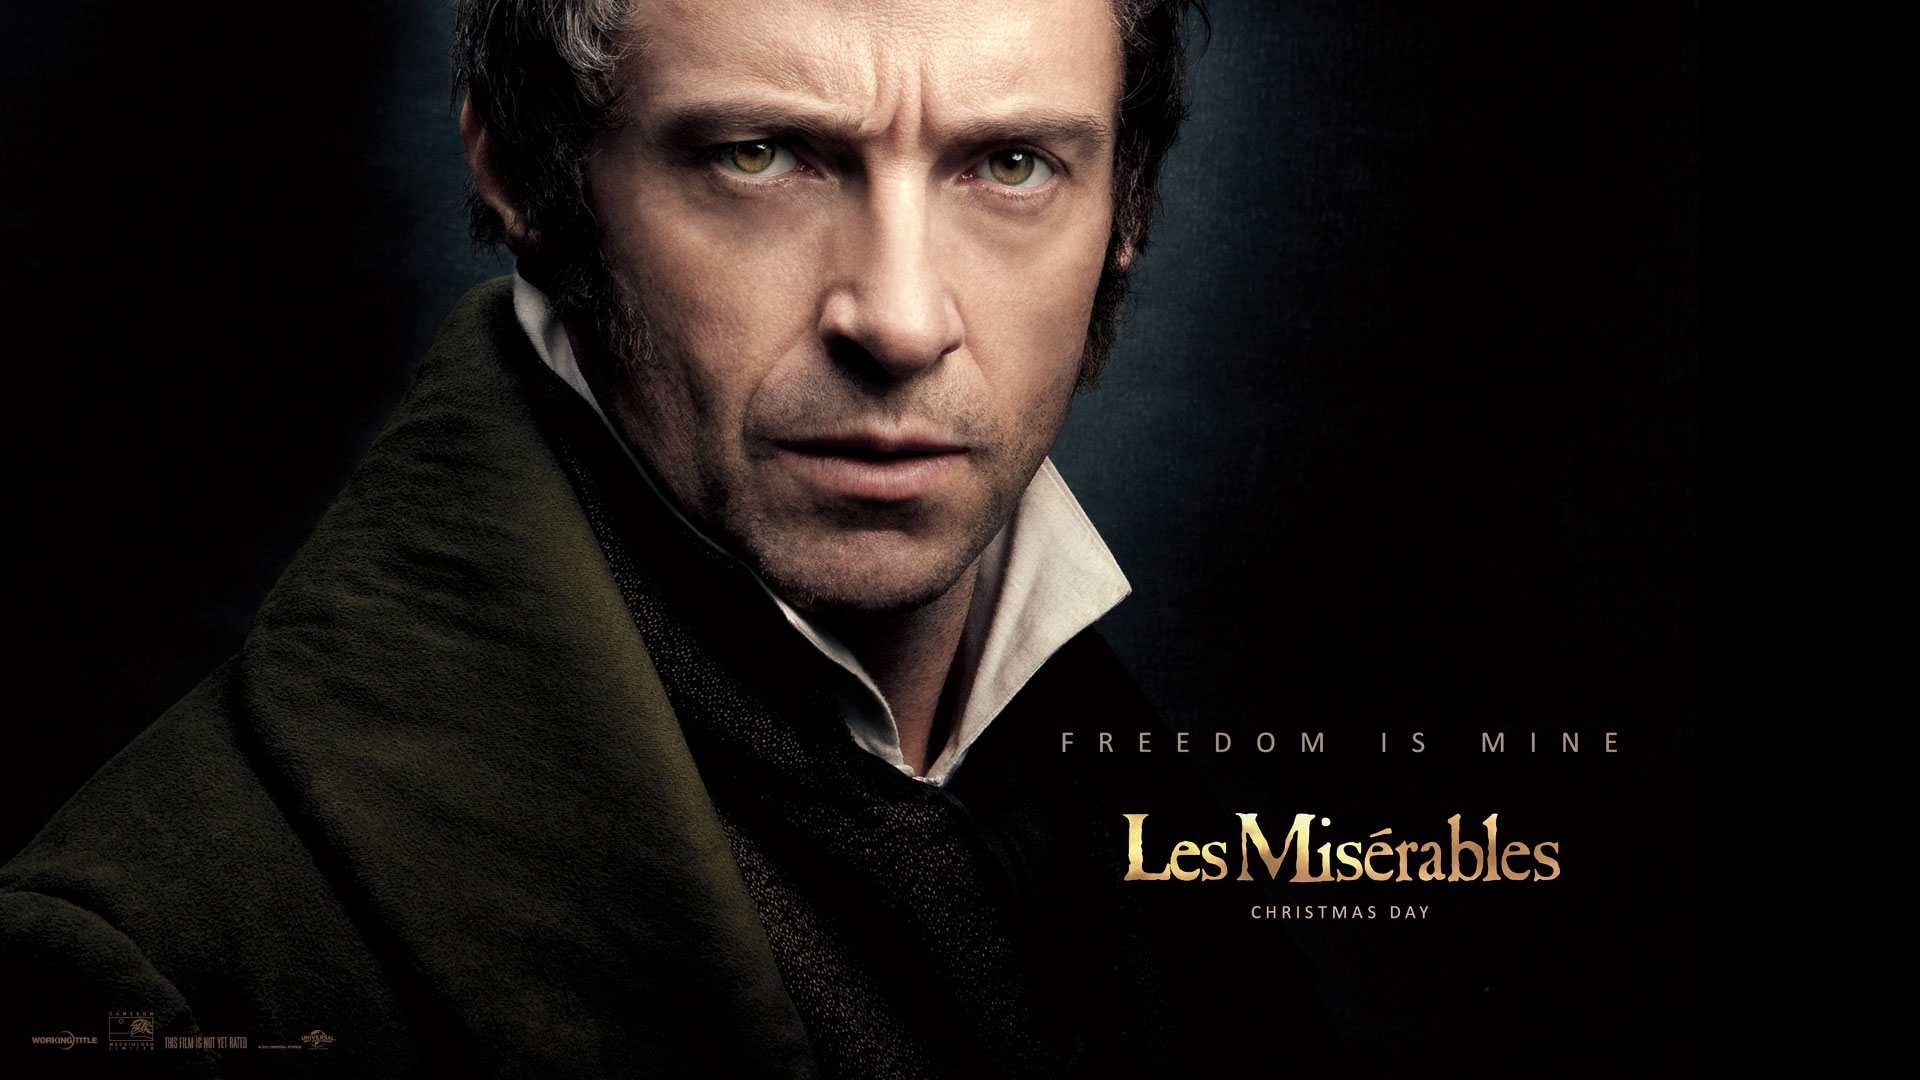 Les-Miserables-Wallpapers-les-miserables-2012-movie-32692734-1920-1080